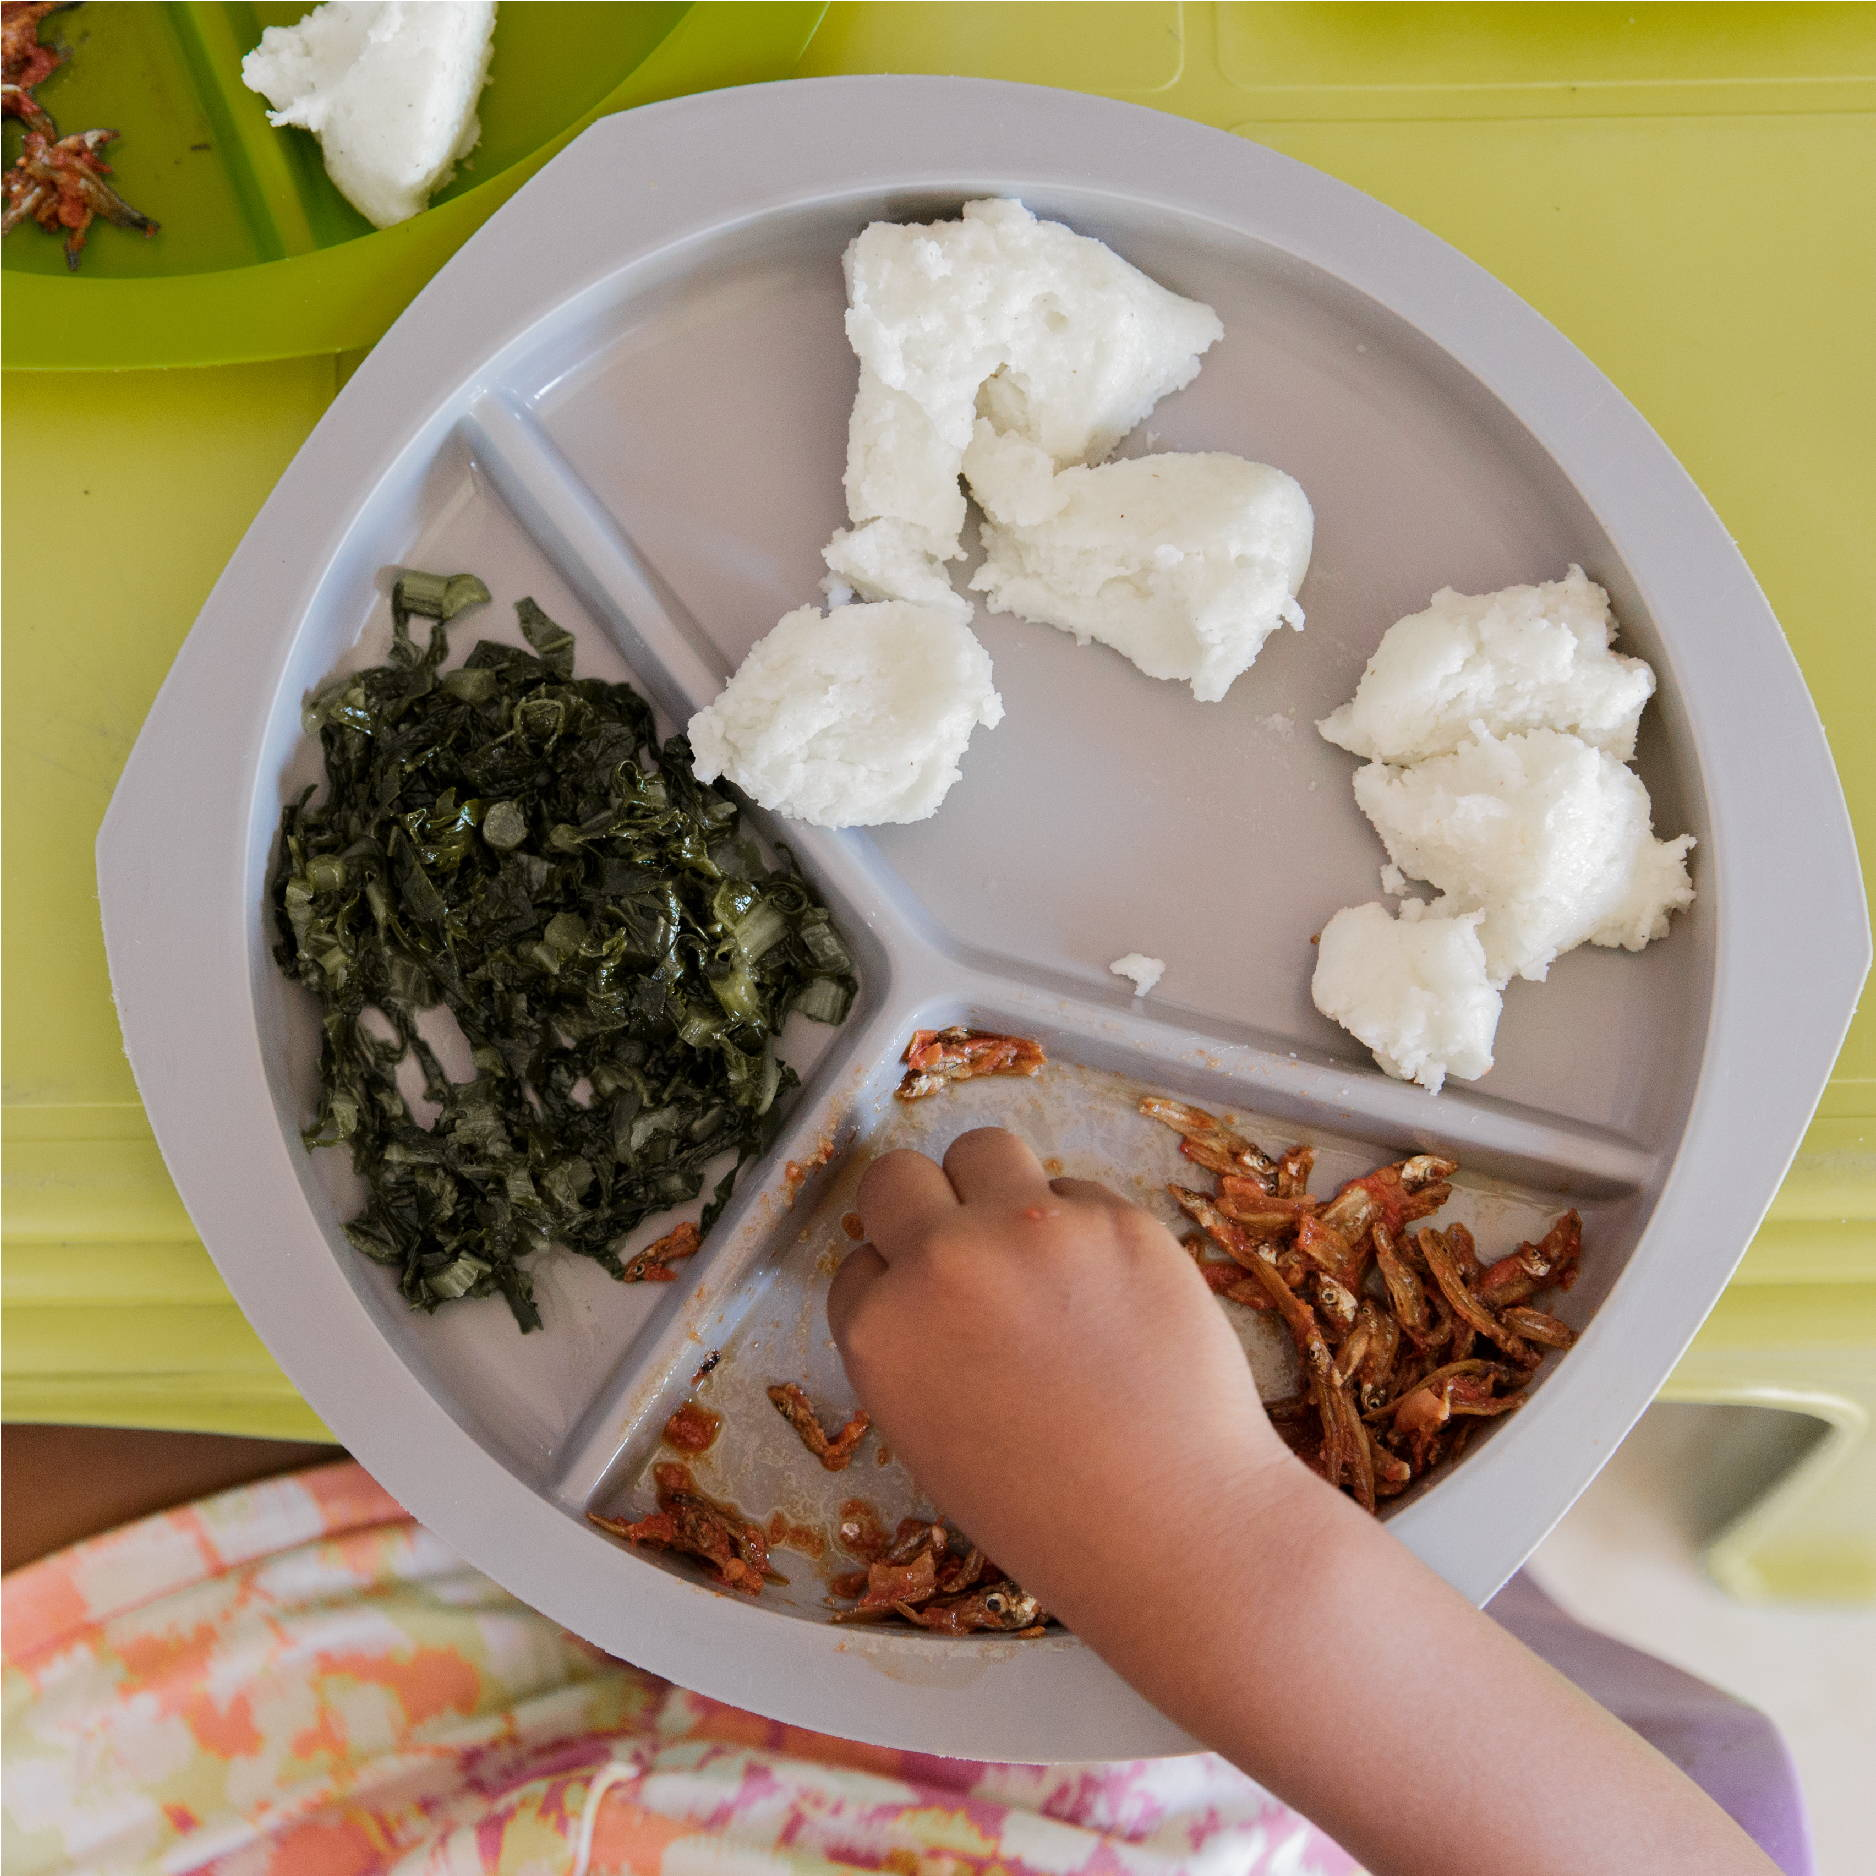 A small hand reaches onto a typical plate of food in Zambia: Nshima, buka buka fish, and greens.